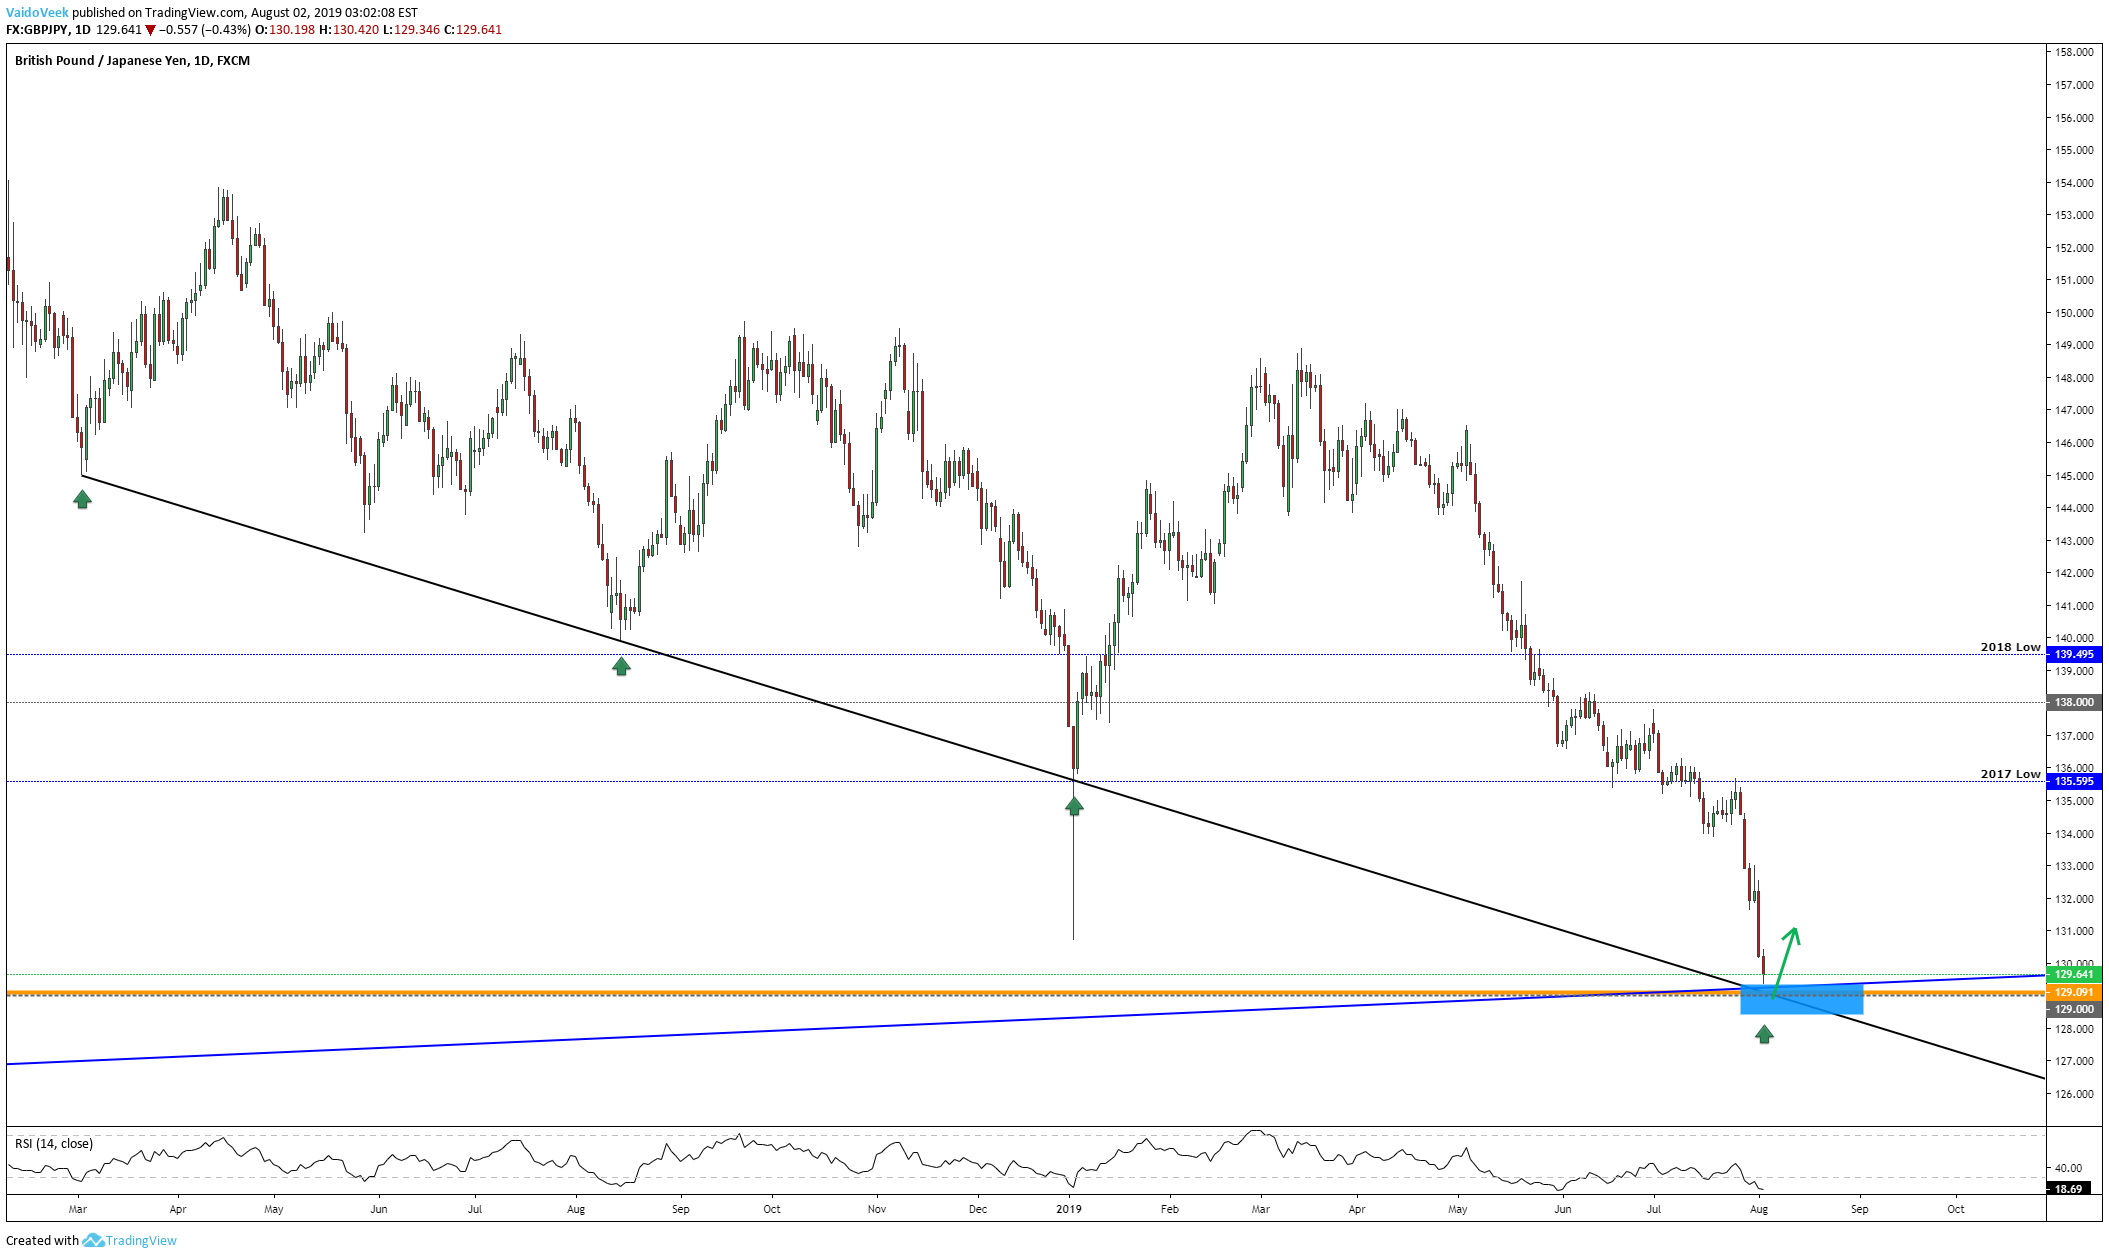 GBPJPY  Who Wins The Battle, Technical Analysis or